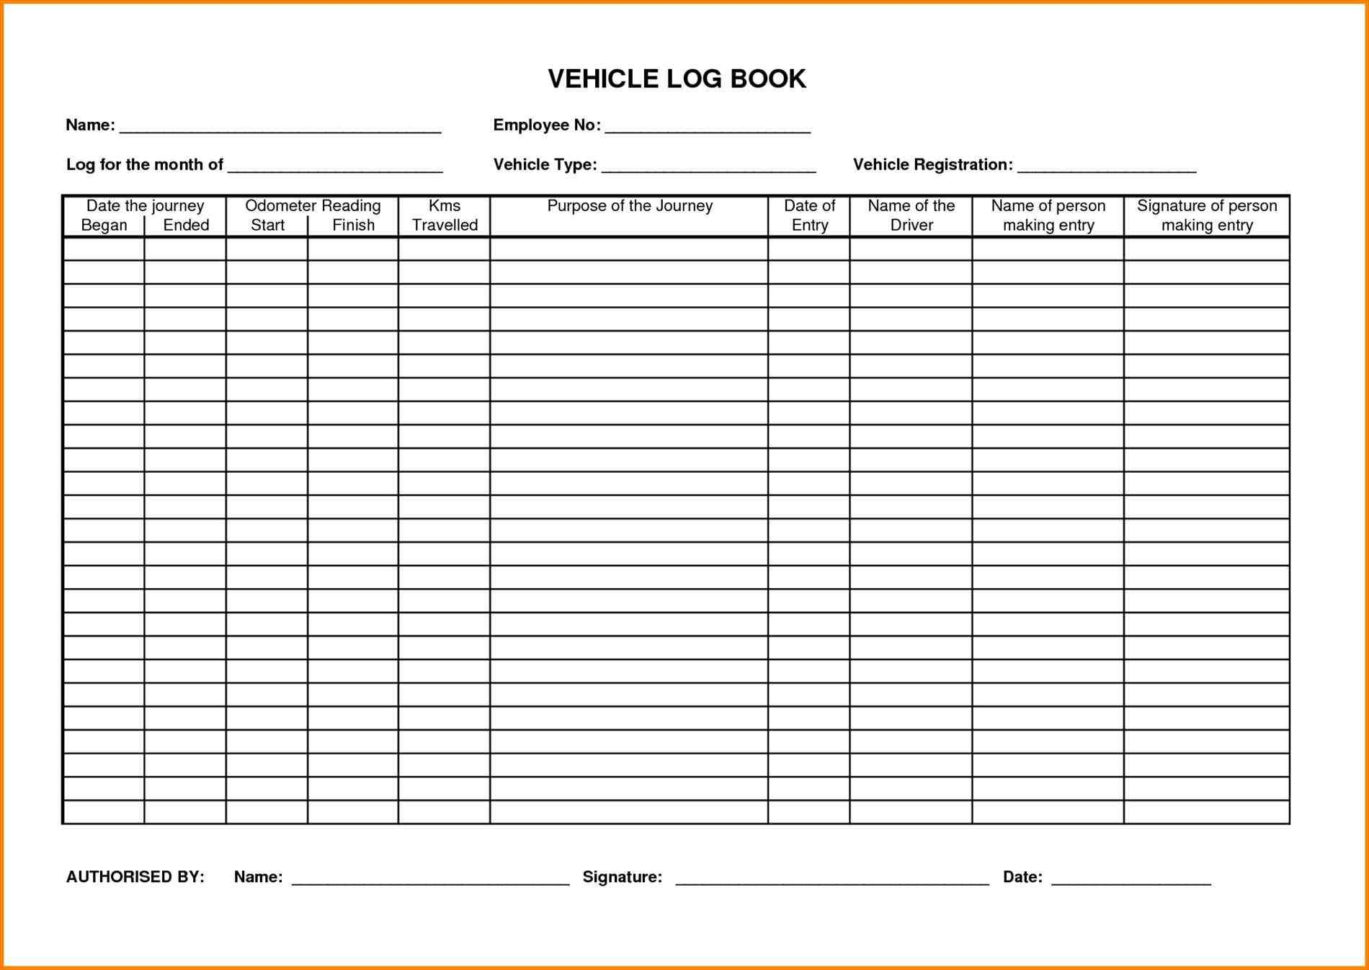 Vehicle Fuel Log Spreadsheet Throughout Vehicle Fuel Log Book Template Archives  Parttime Jobs